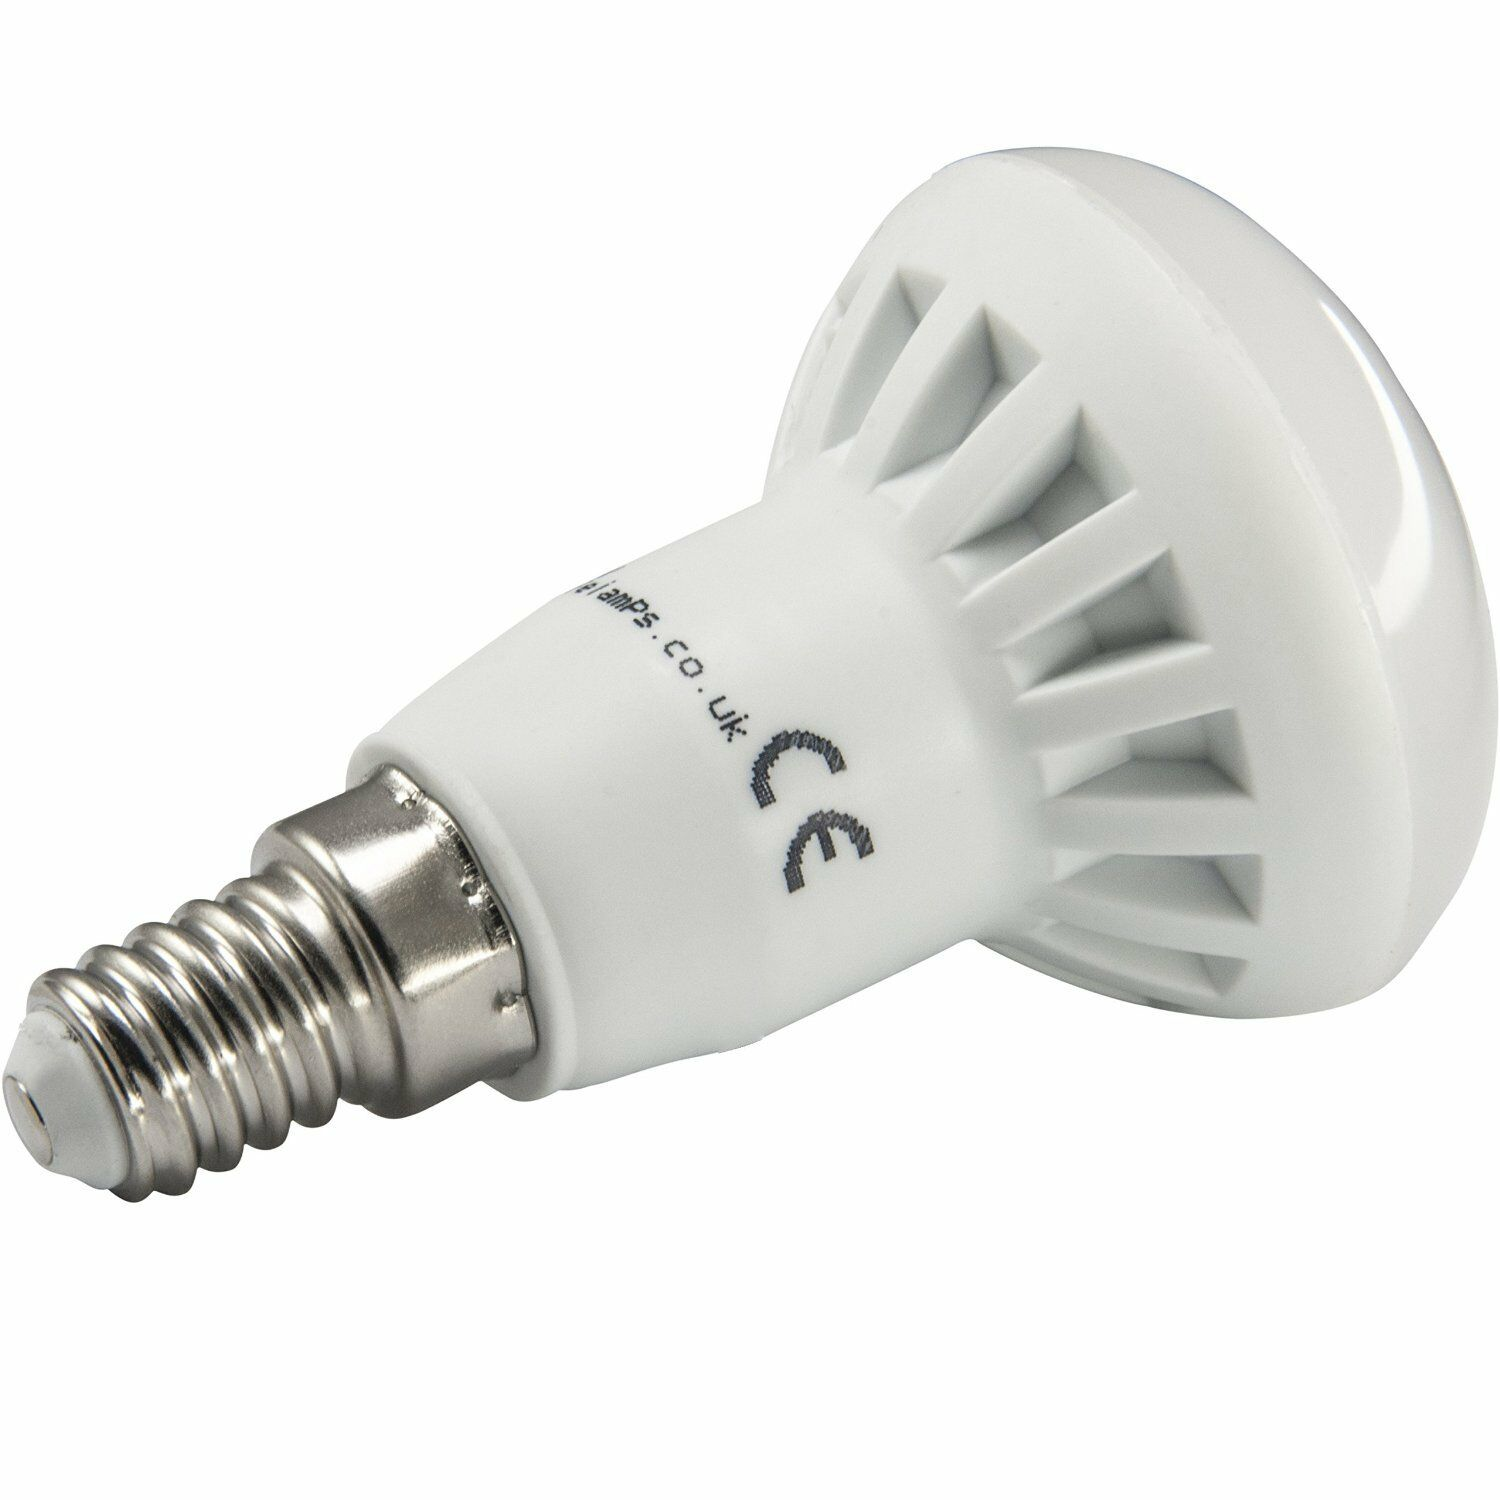 R50 Led R50 Led 5w E14 Replacement For Reflector R50 Light Bulb